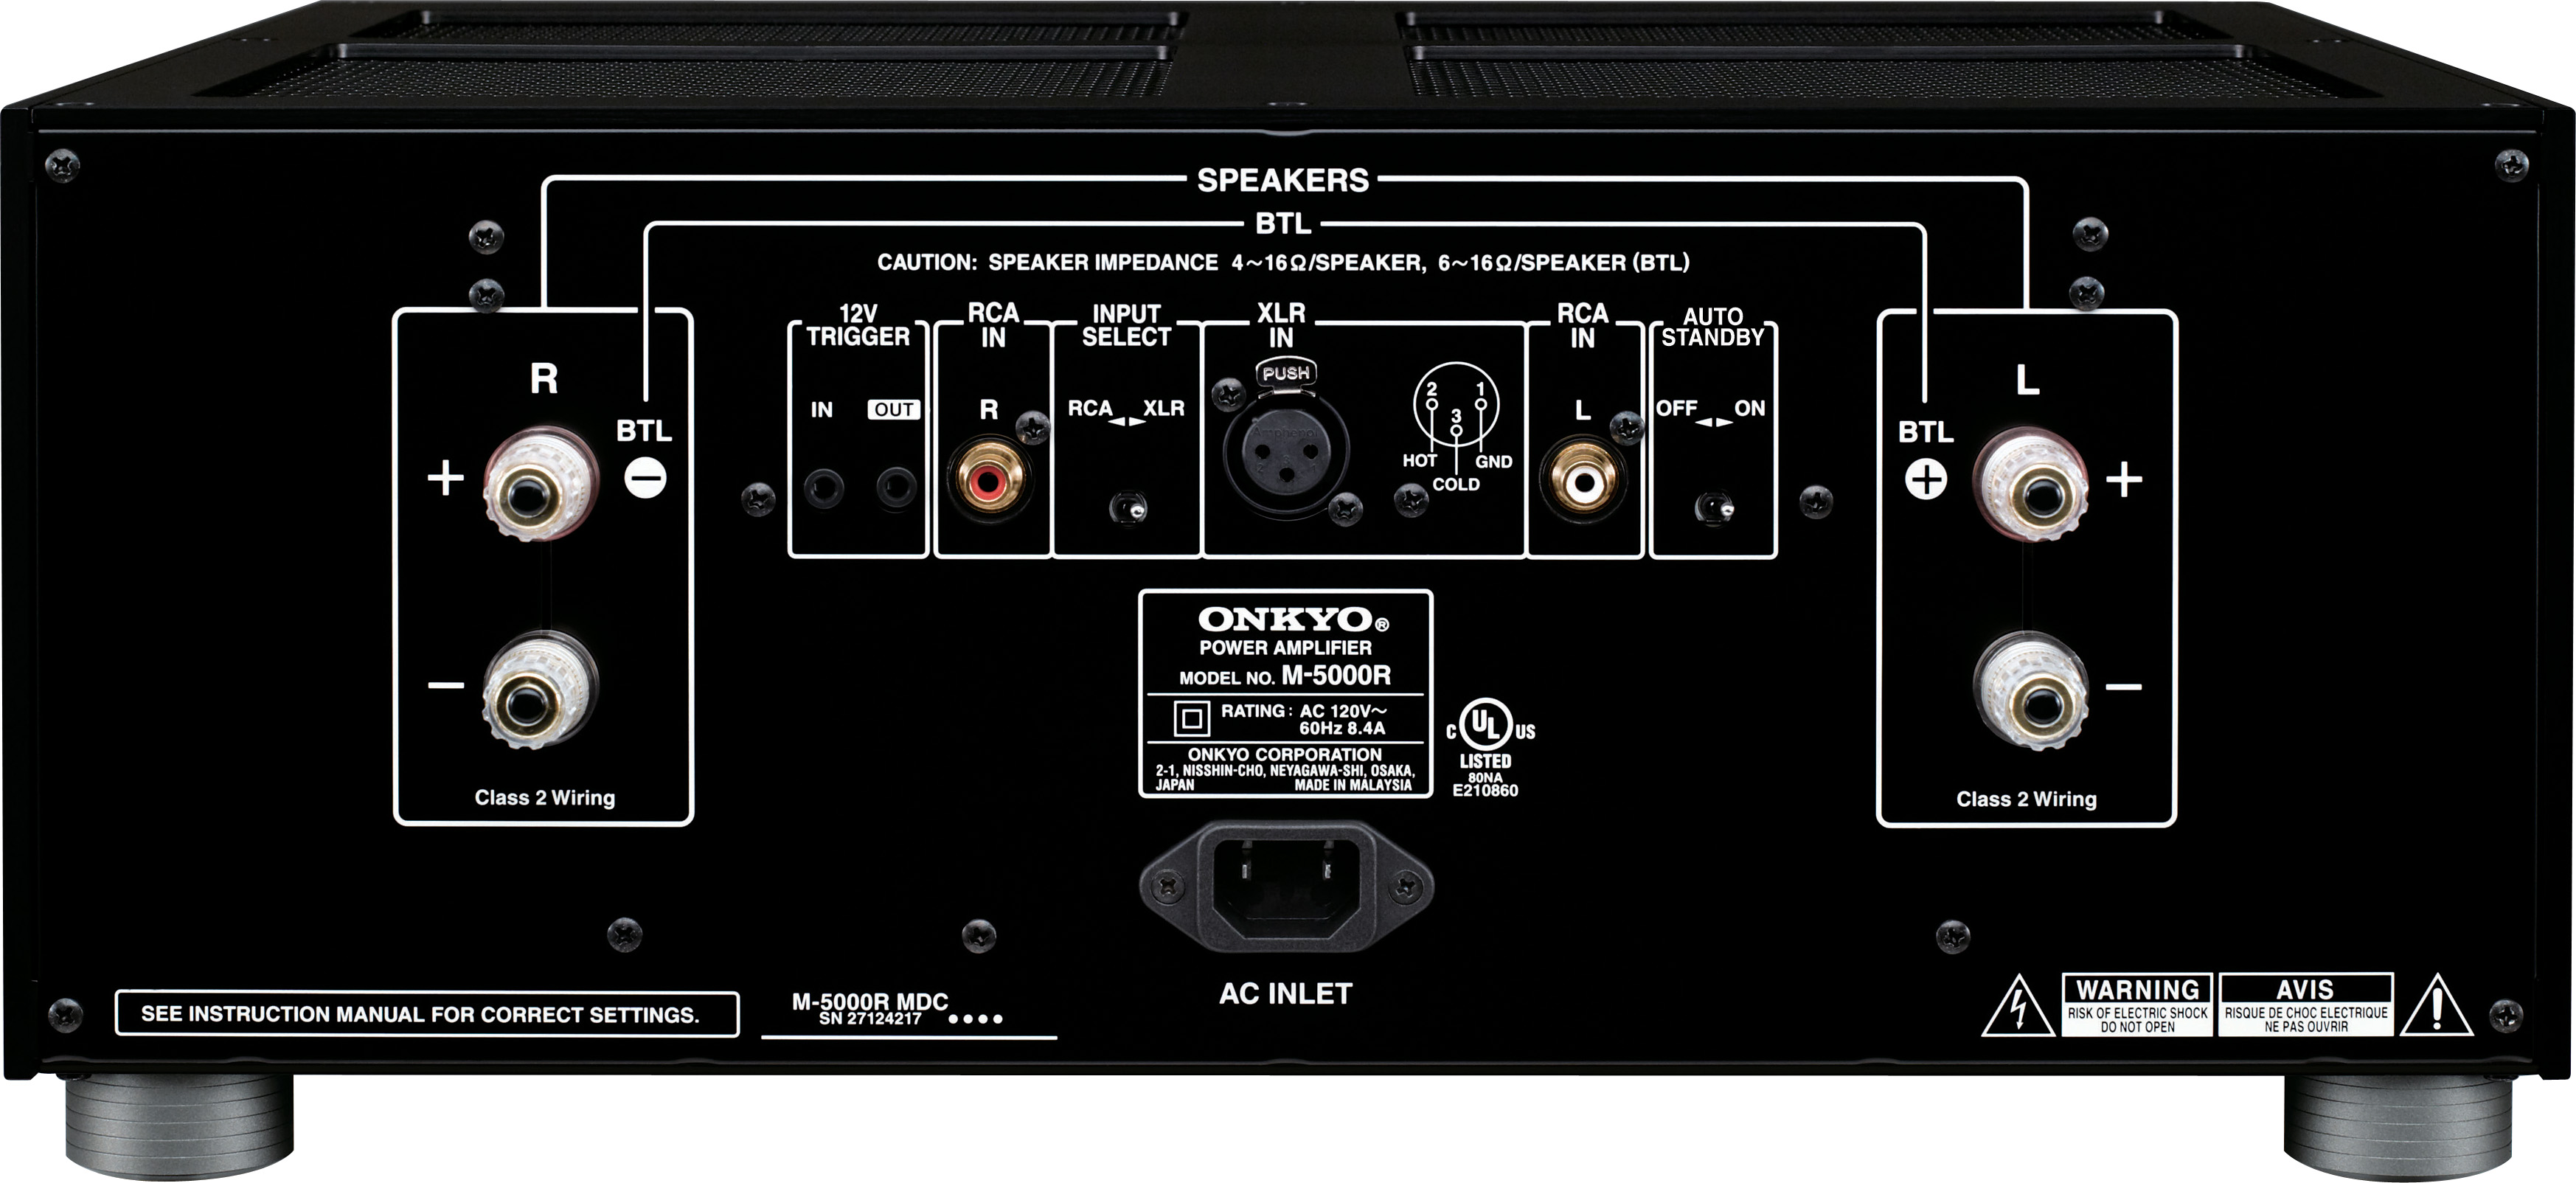 Test Report: Onkyo P-3000R preamp and M-5000R power amp Page 2